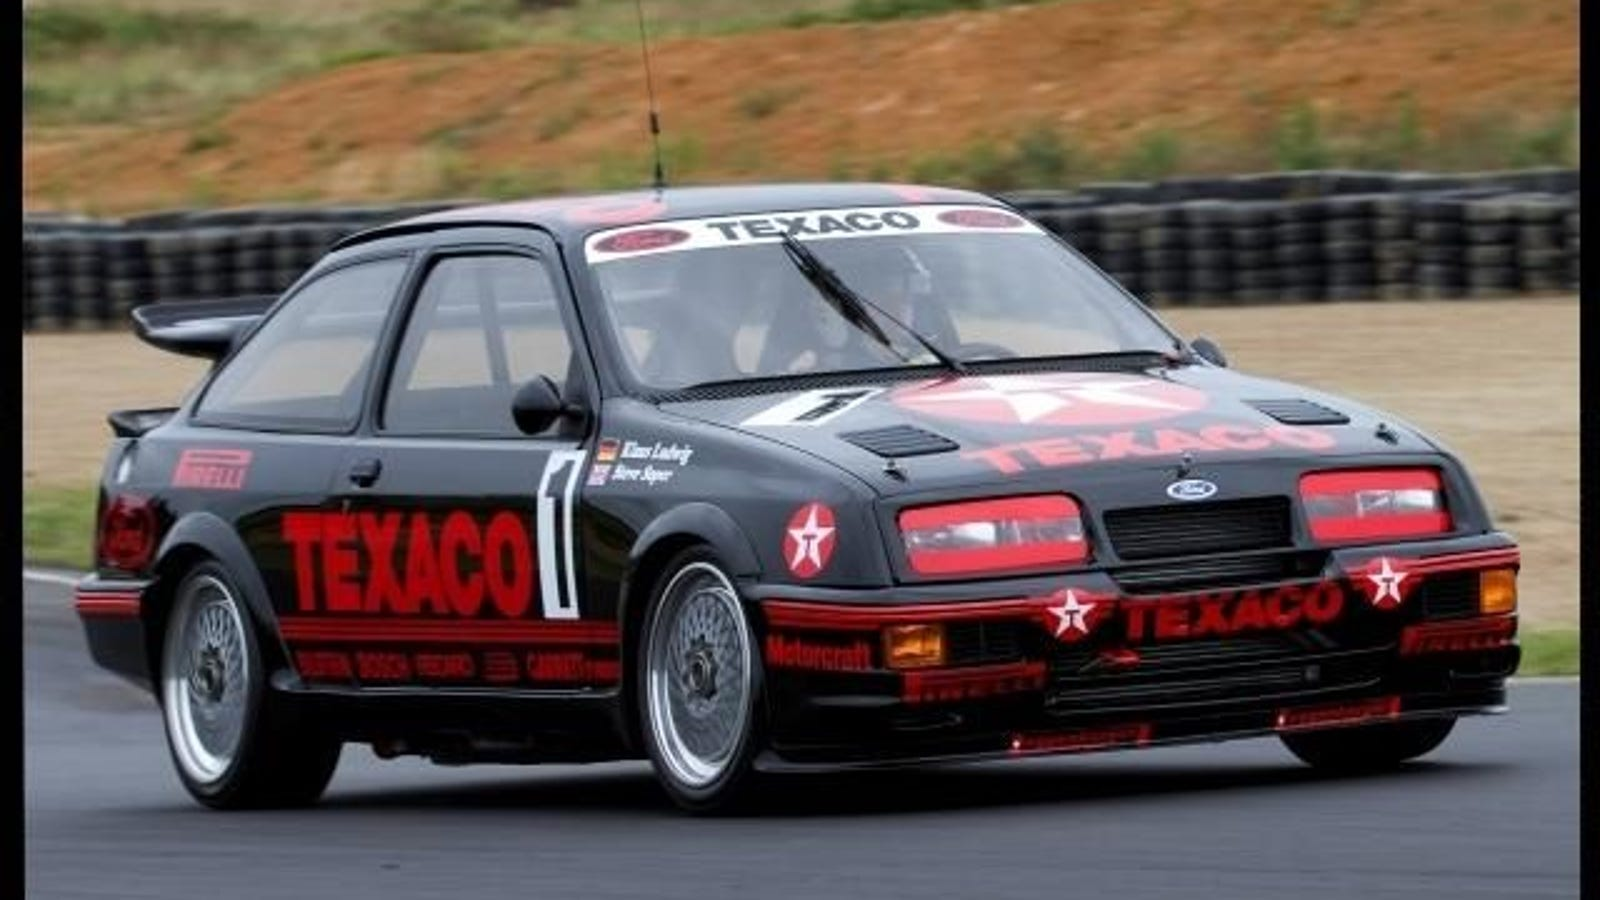 Spotted on Trade Me: 1988 Sierra RS500 TEXACO